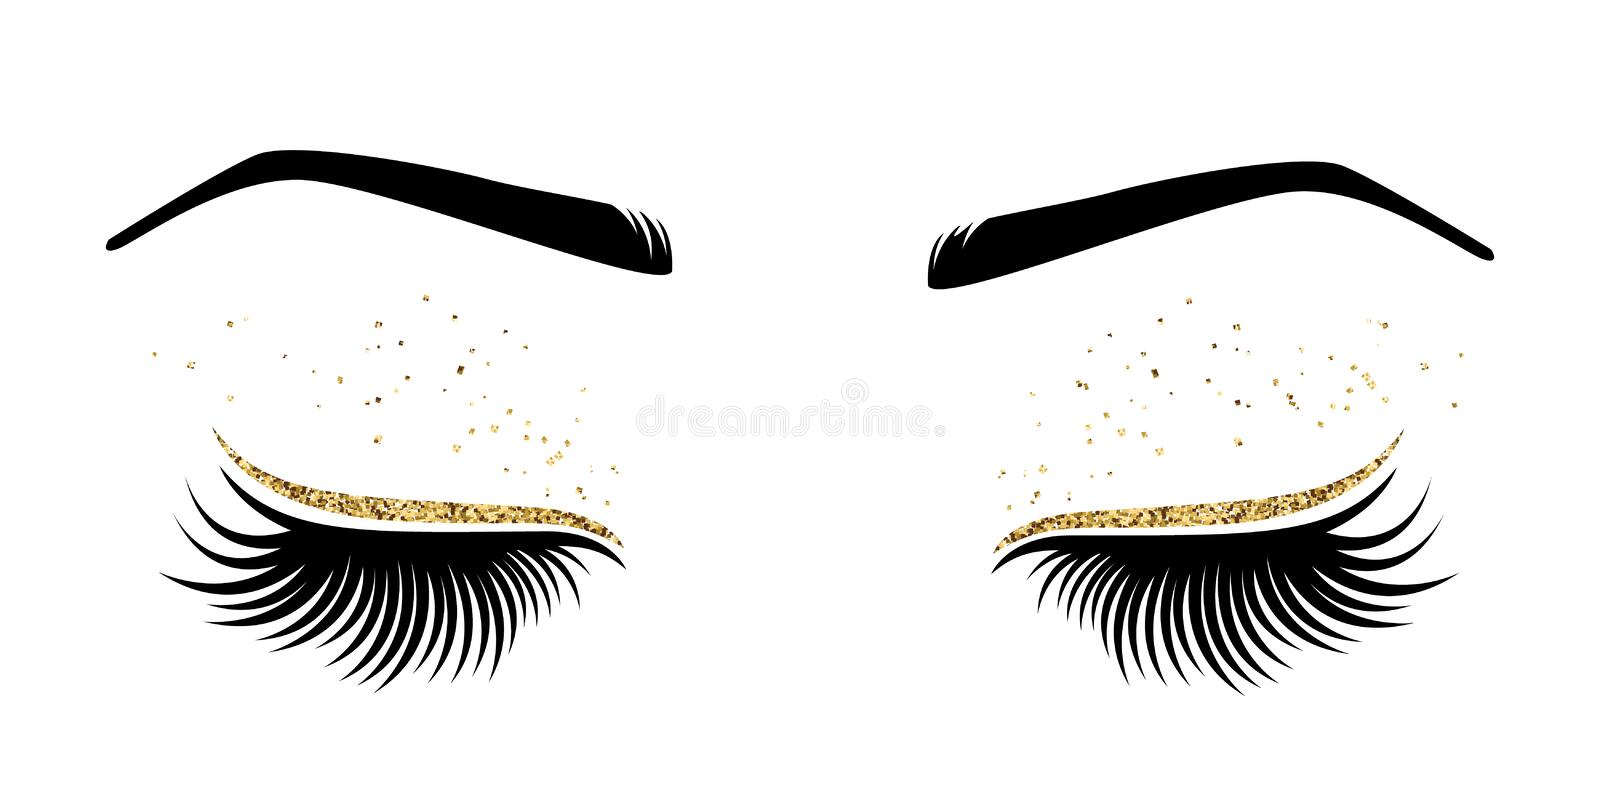 Vector illustration of eyes with long eyes lashes. For beauty salon, lash extensions maker stock illustration